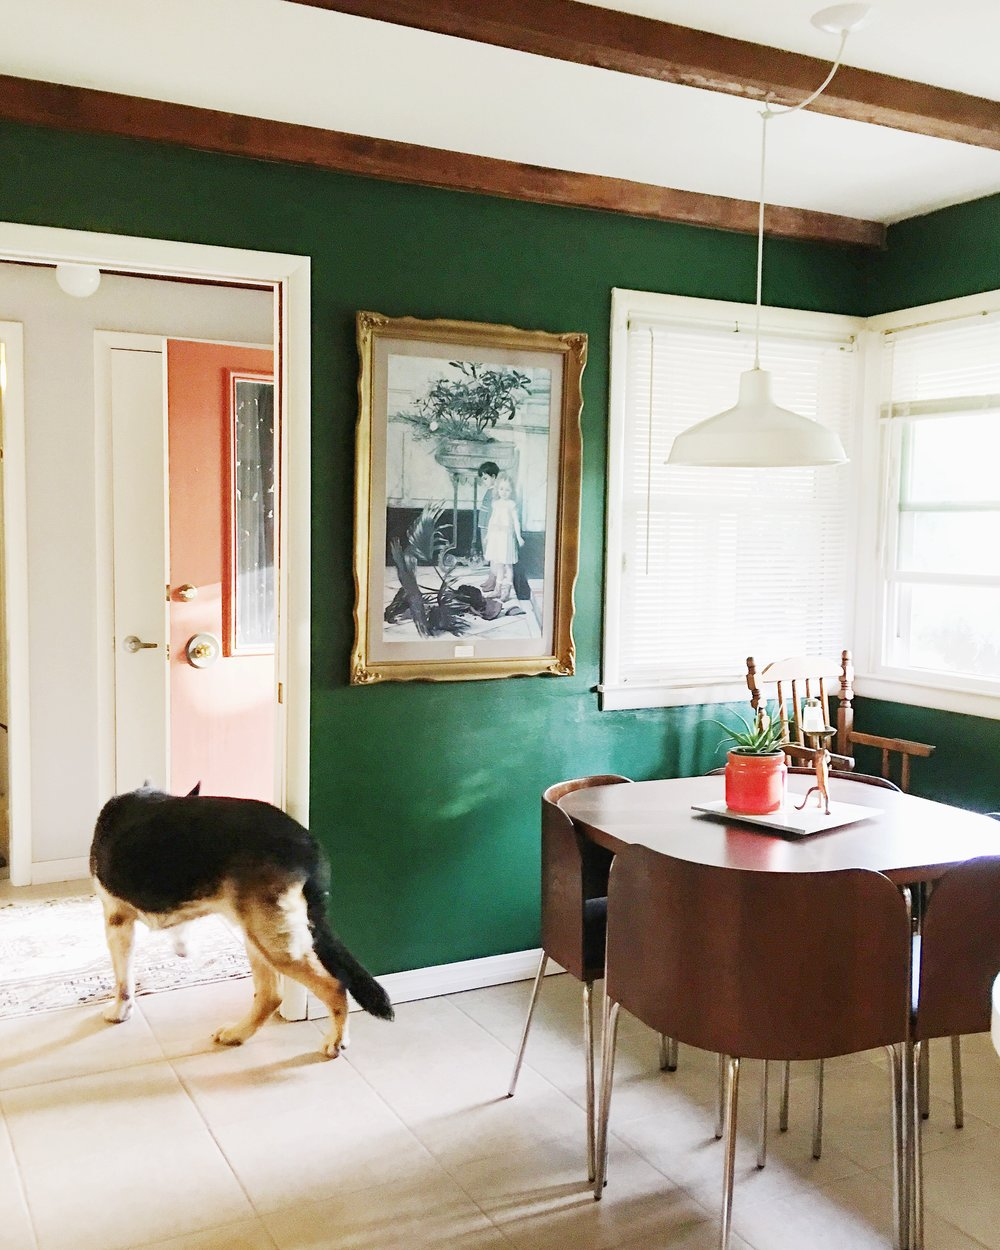 Before: The walls were green, but everything else is so different!